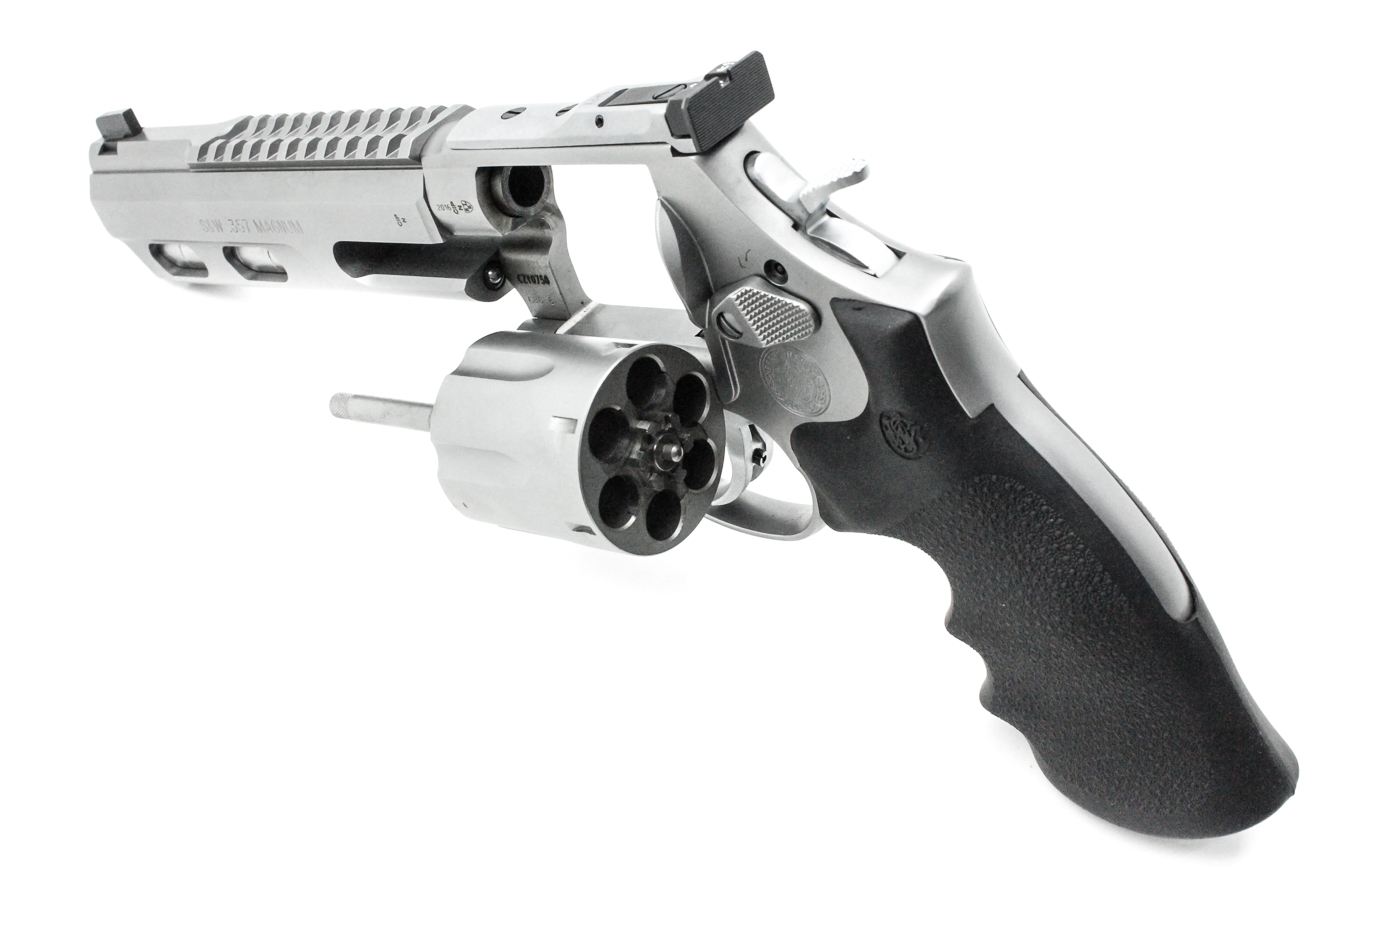 Smith & Wesson 686 Competitor, .357 Magnum - Image 3